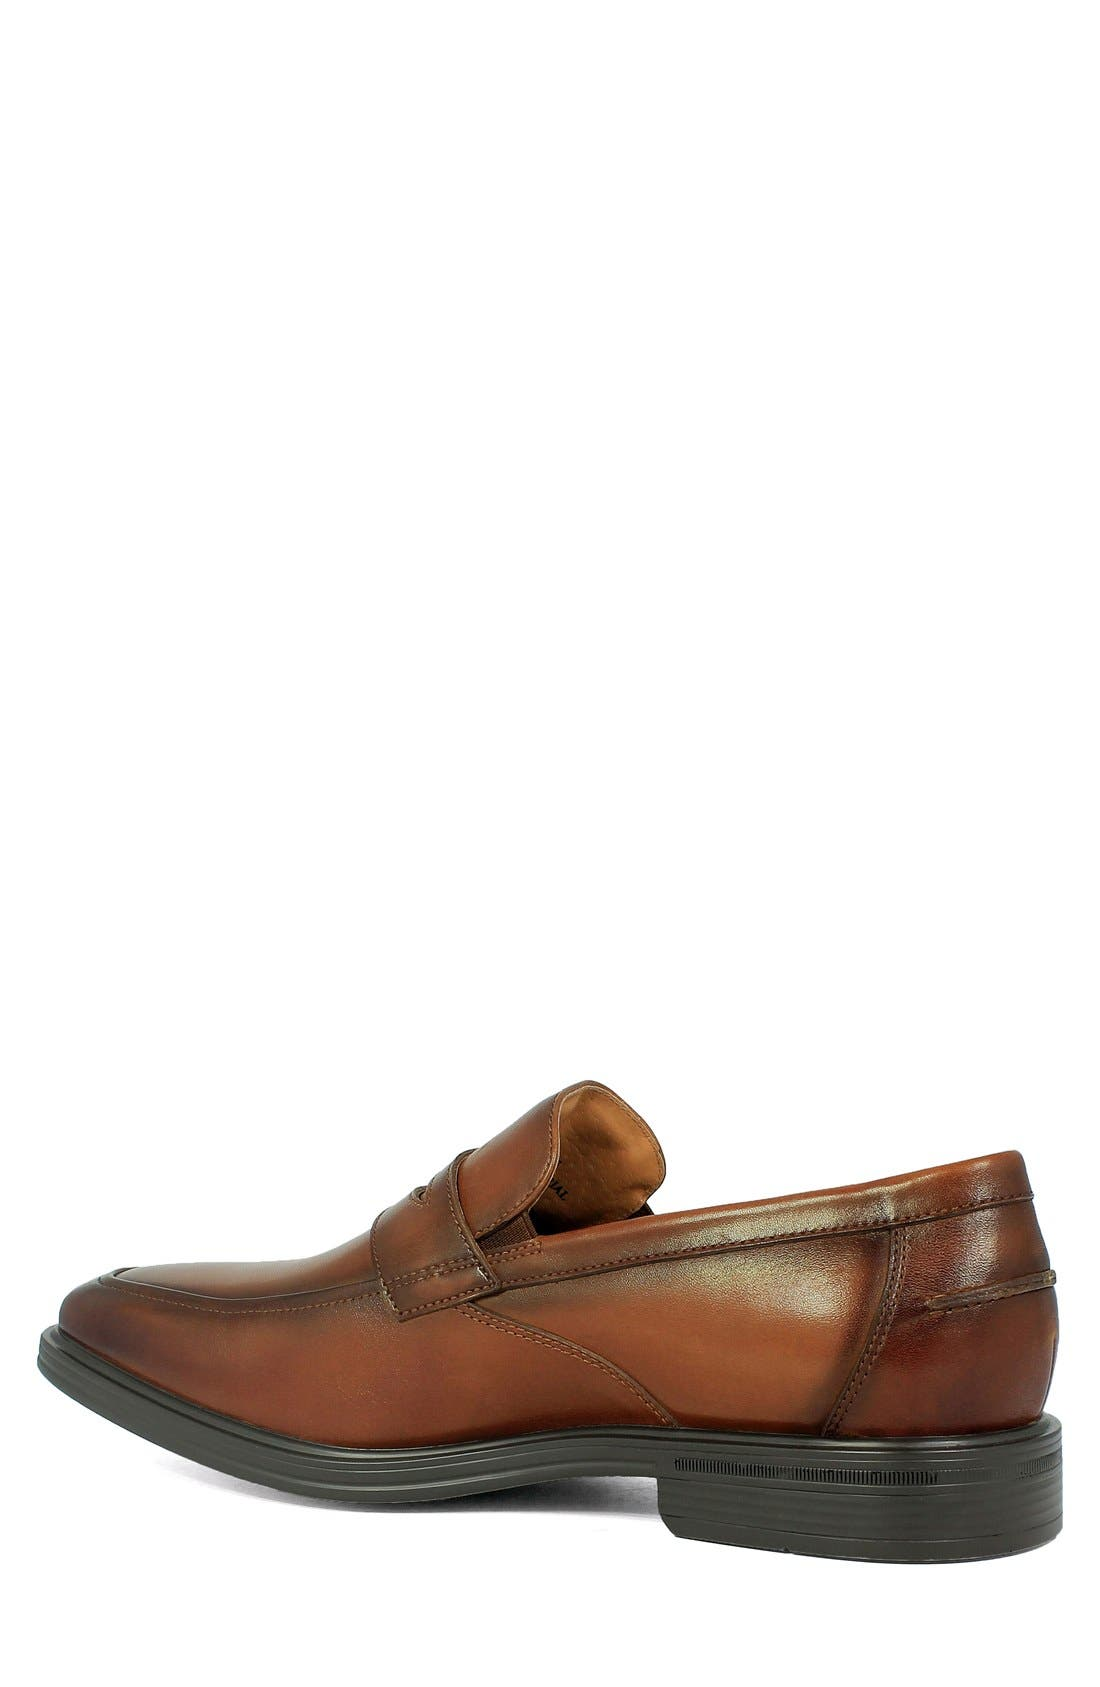 'Heights' Penny Loafer,                             Alternate thumbnail 2, color,                             COGNAC LEATHER